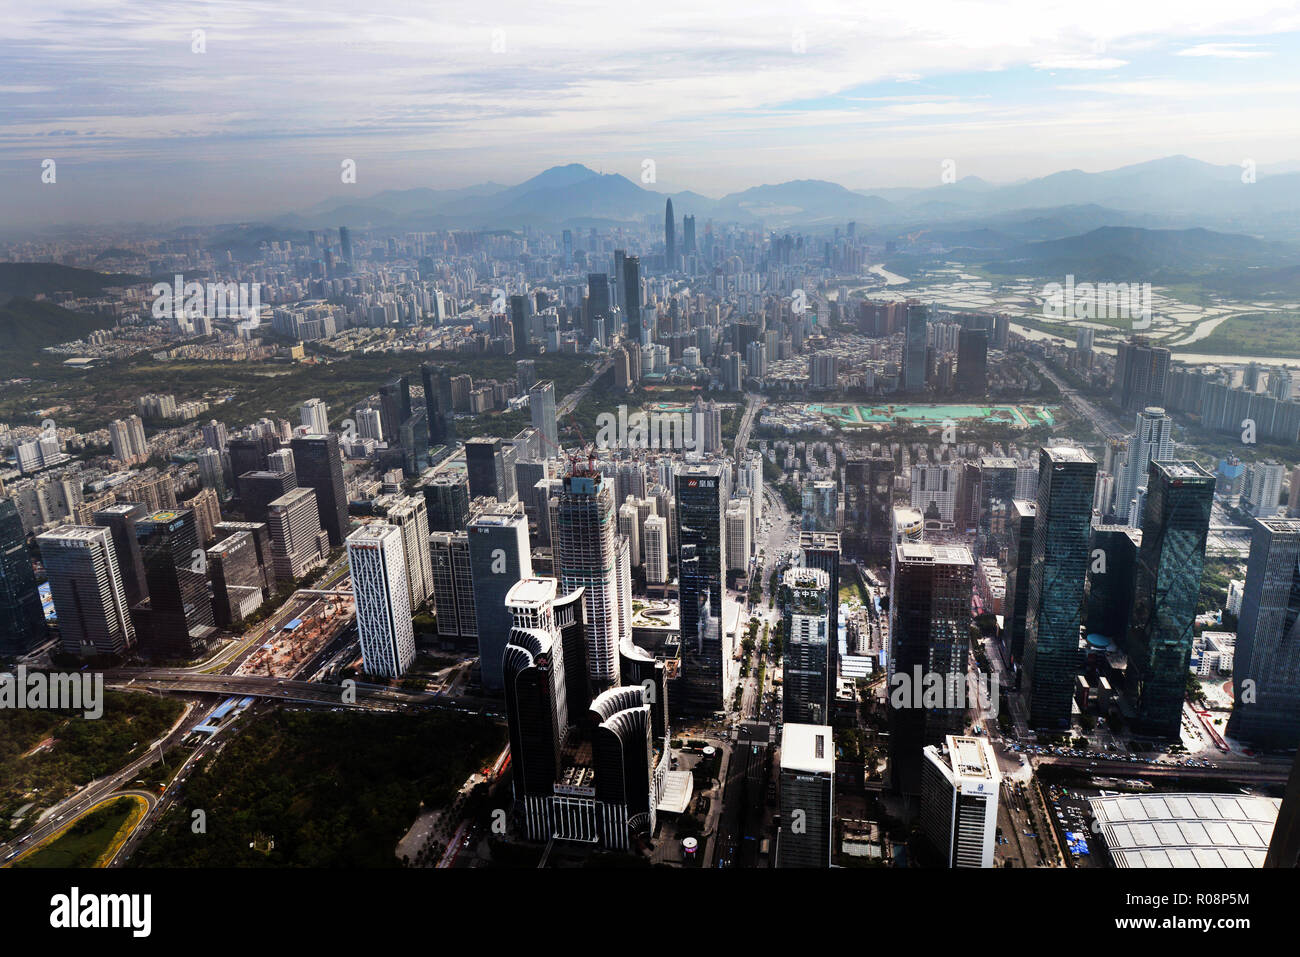 Luohu district as seen from the top of the Ping An tower in Shenzhen. - Stock Image